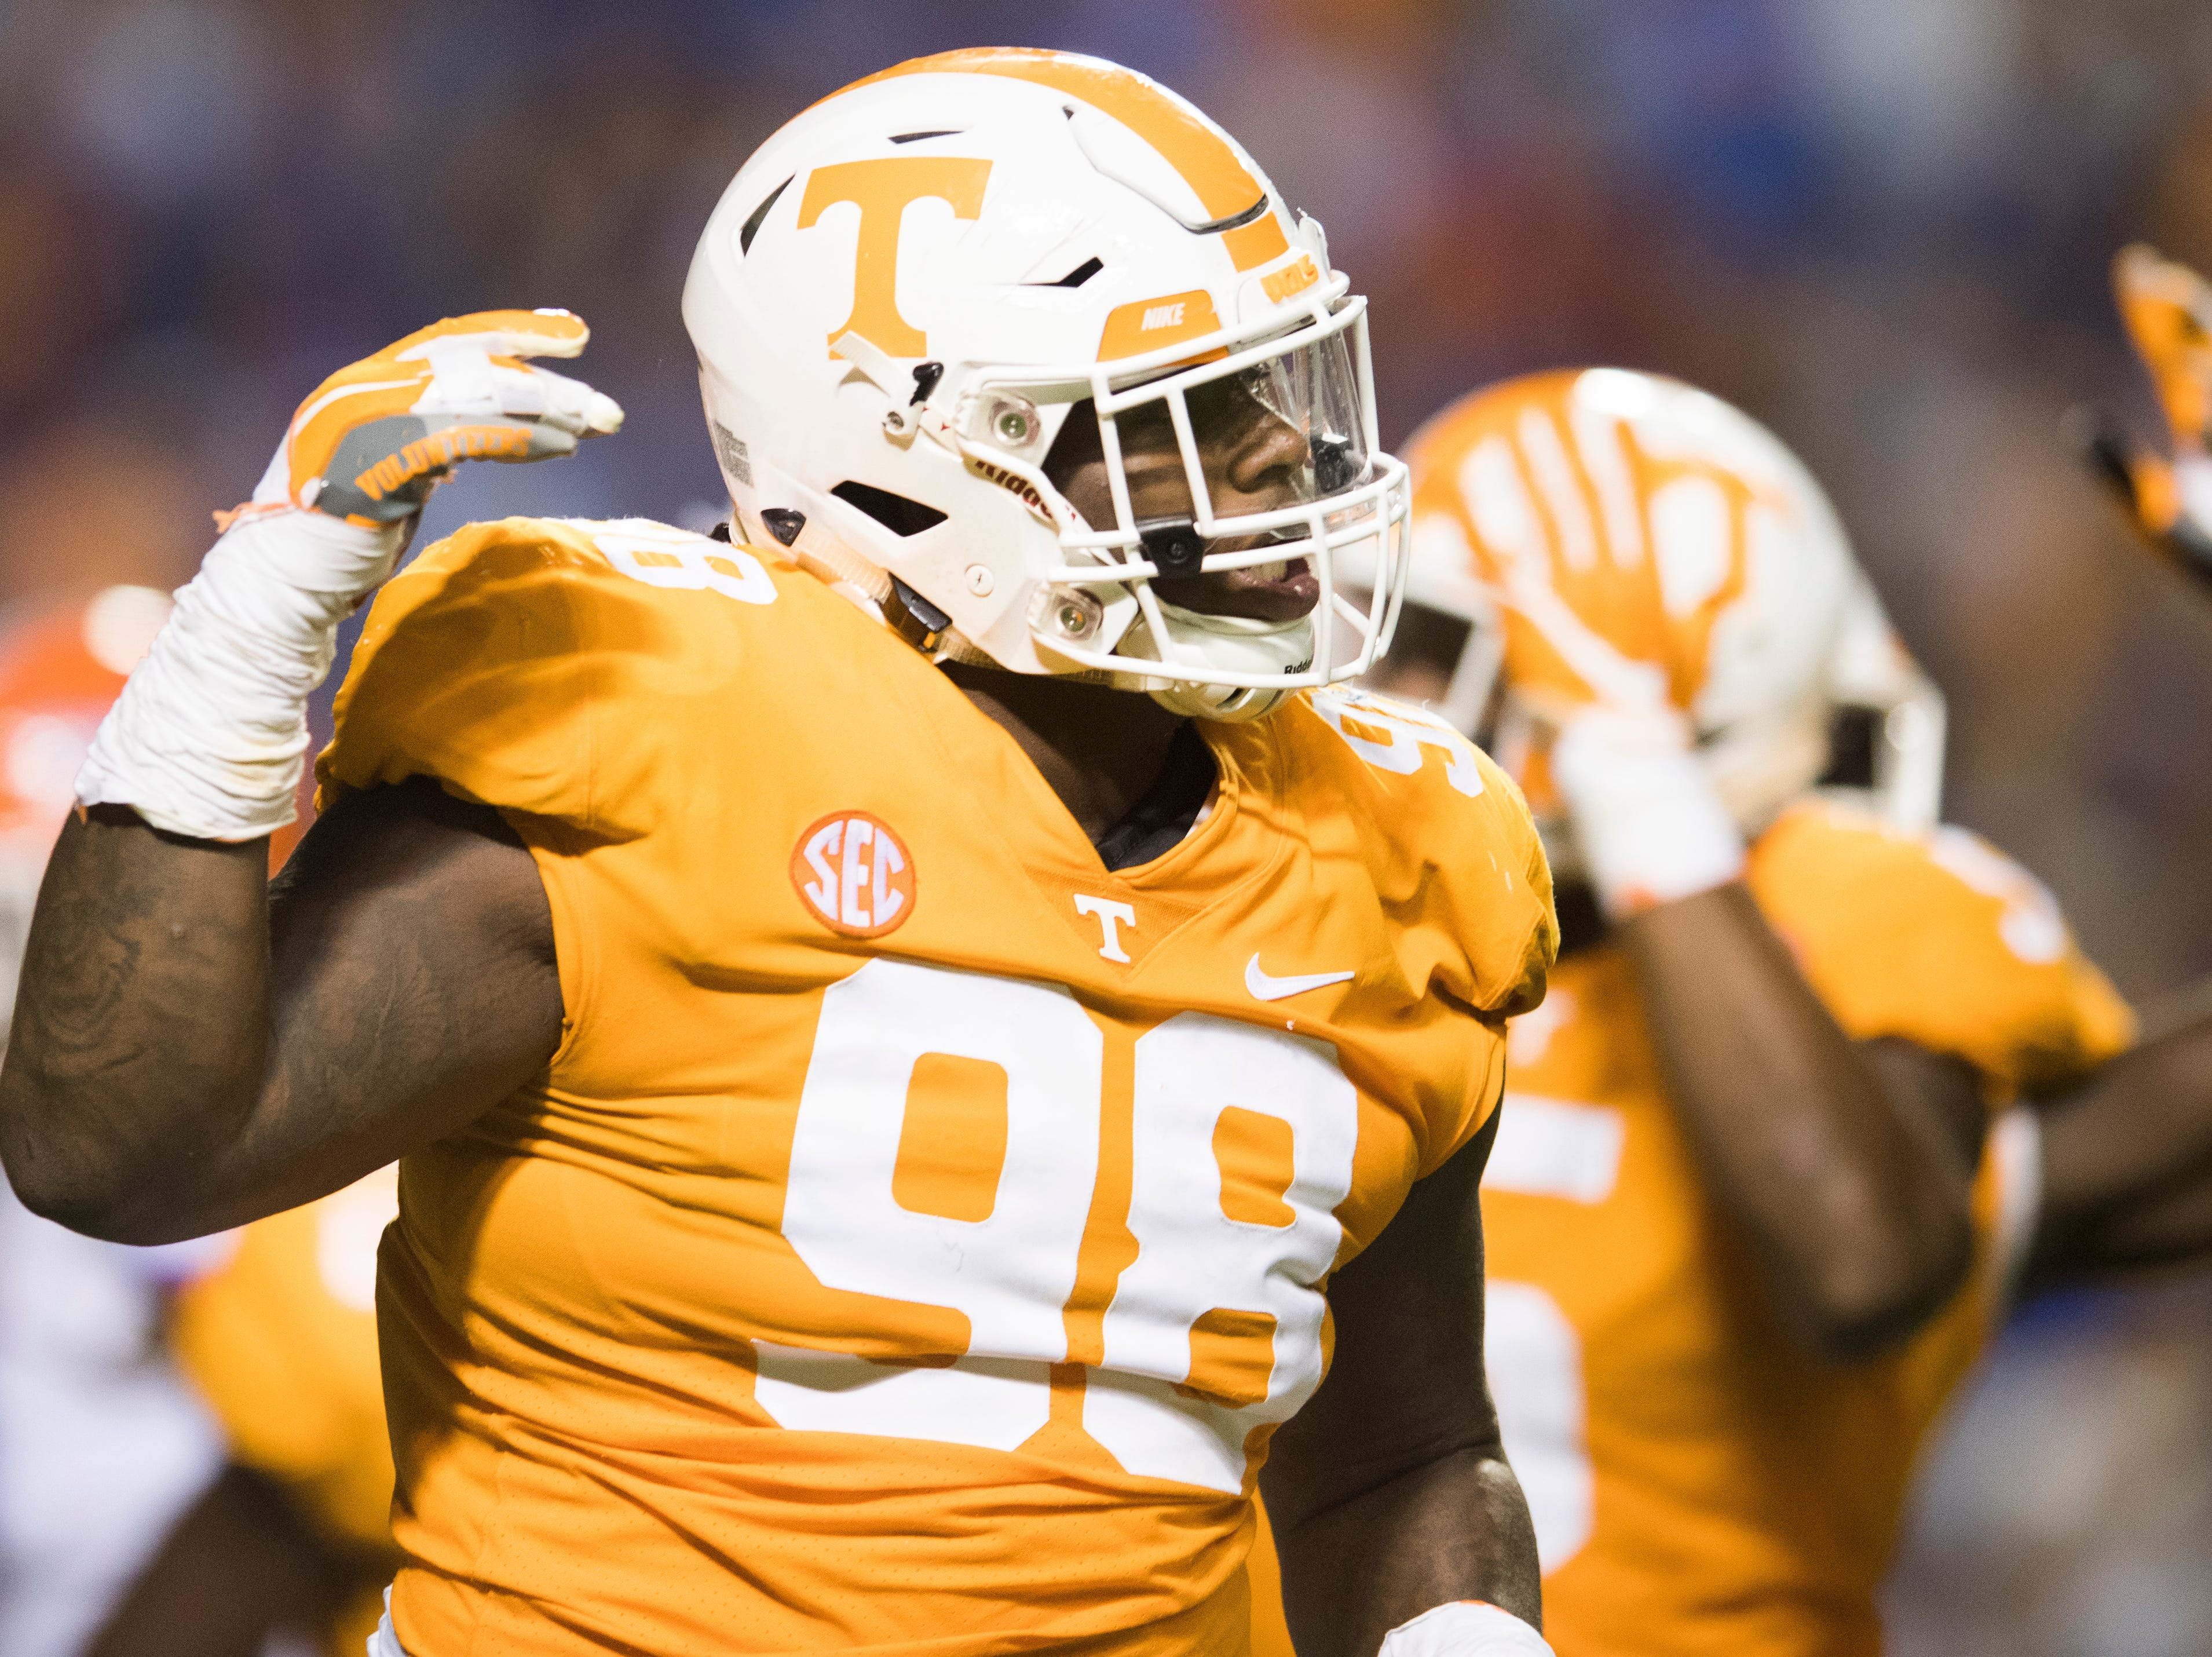 Tennessee defensive lineman Alexis Johnson Jr. (98) reacts after making a play during a game between Tennessee and Florida at Neyland Stadium in Knoxville, Tennessee on Saturday, September 22, 2018.